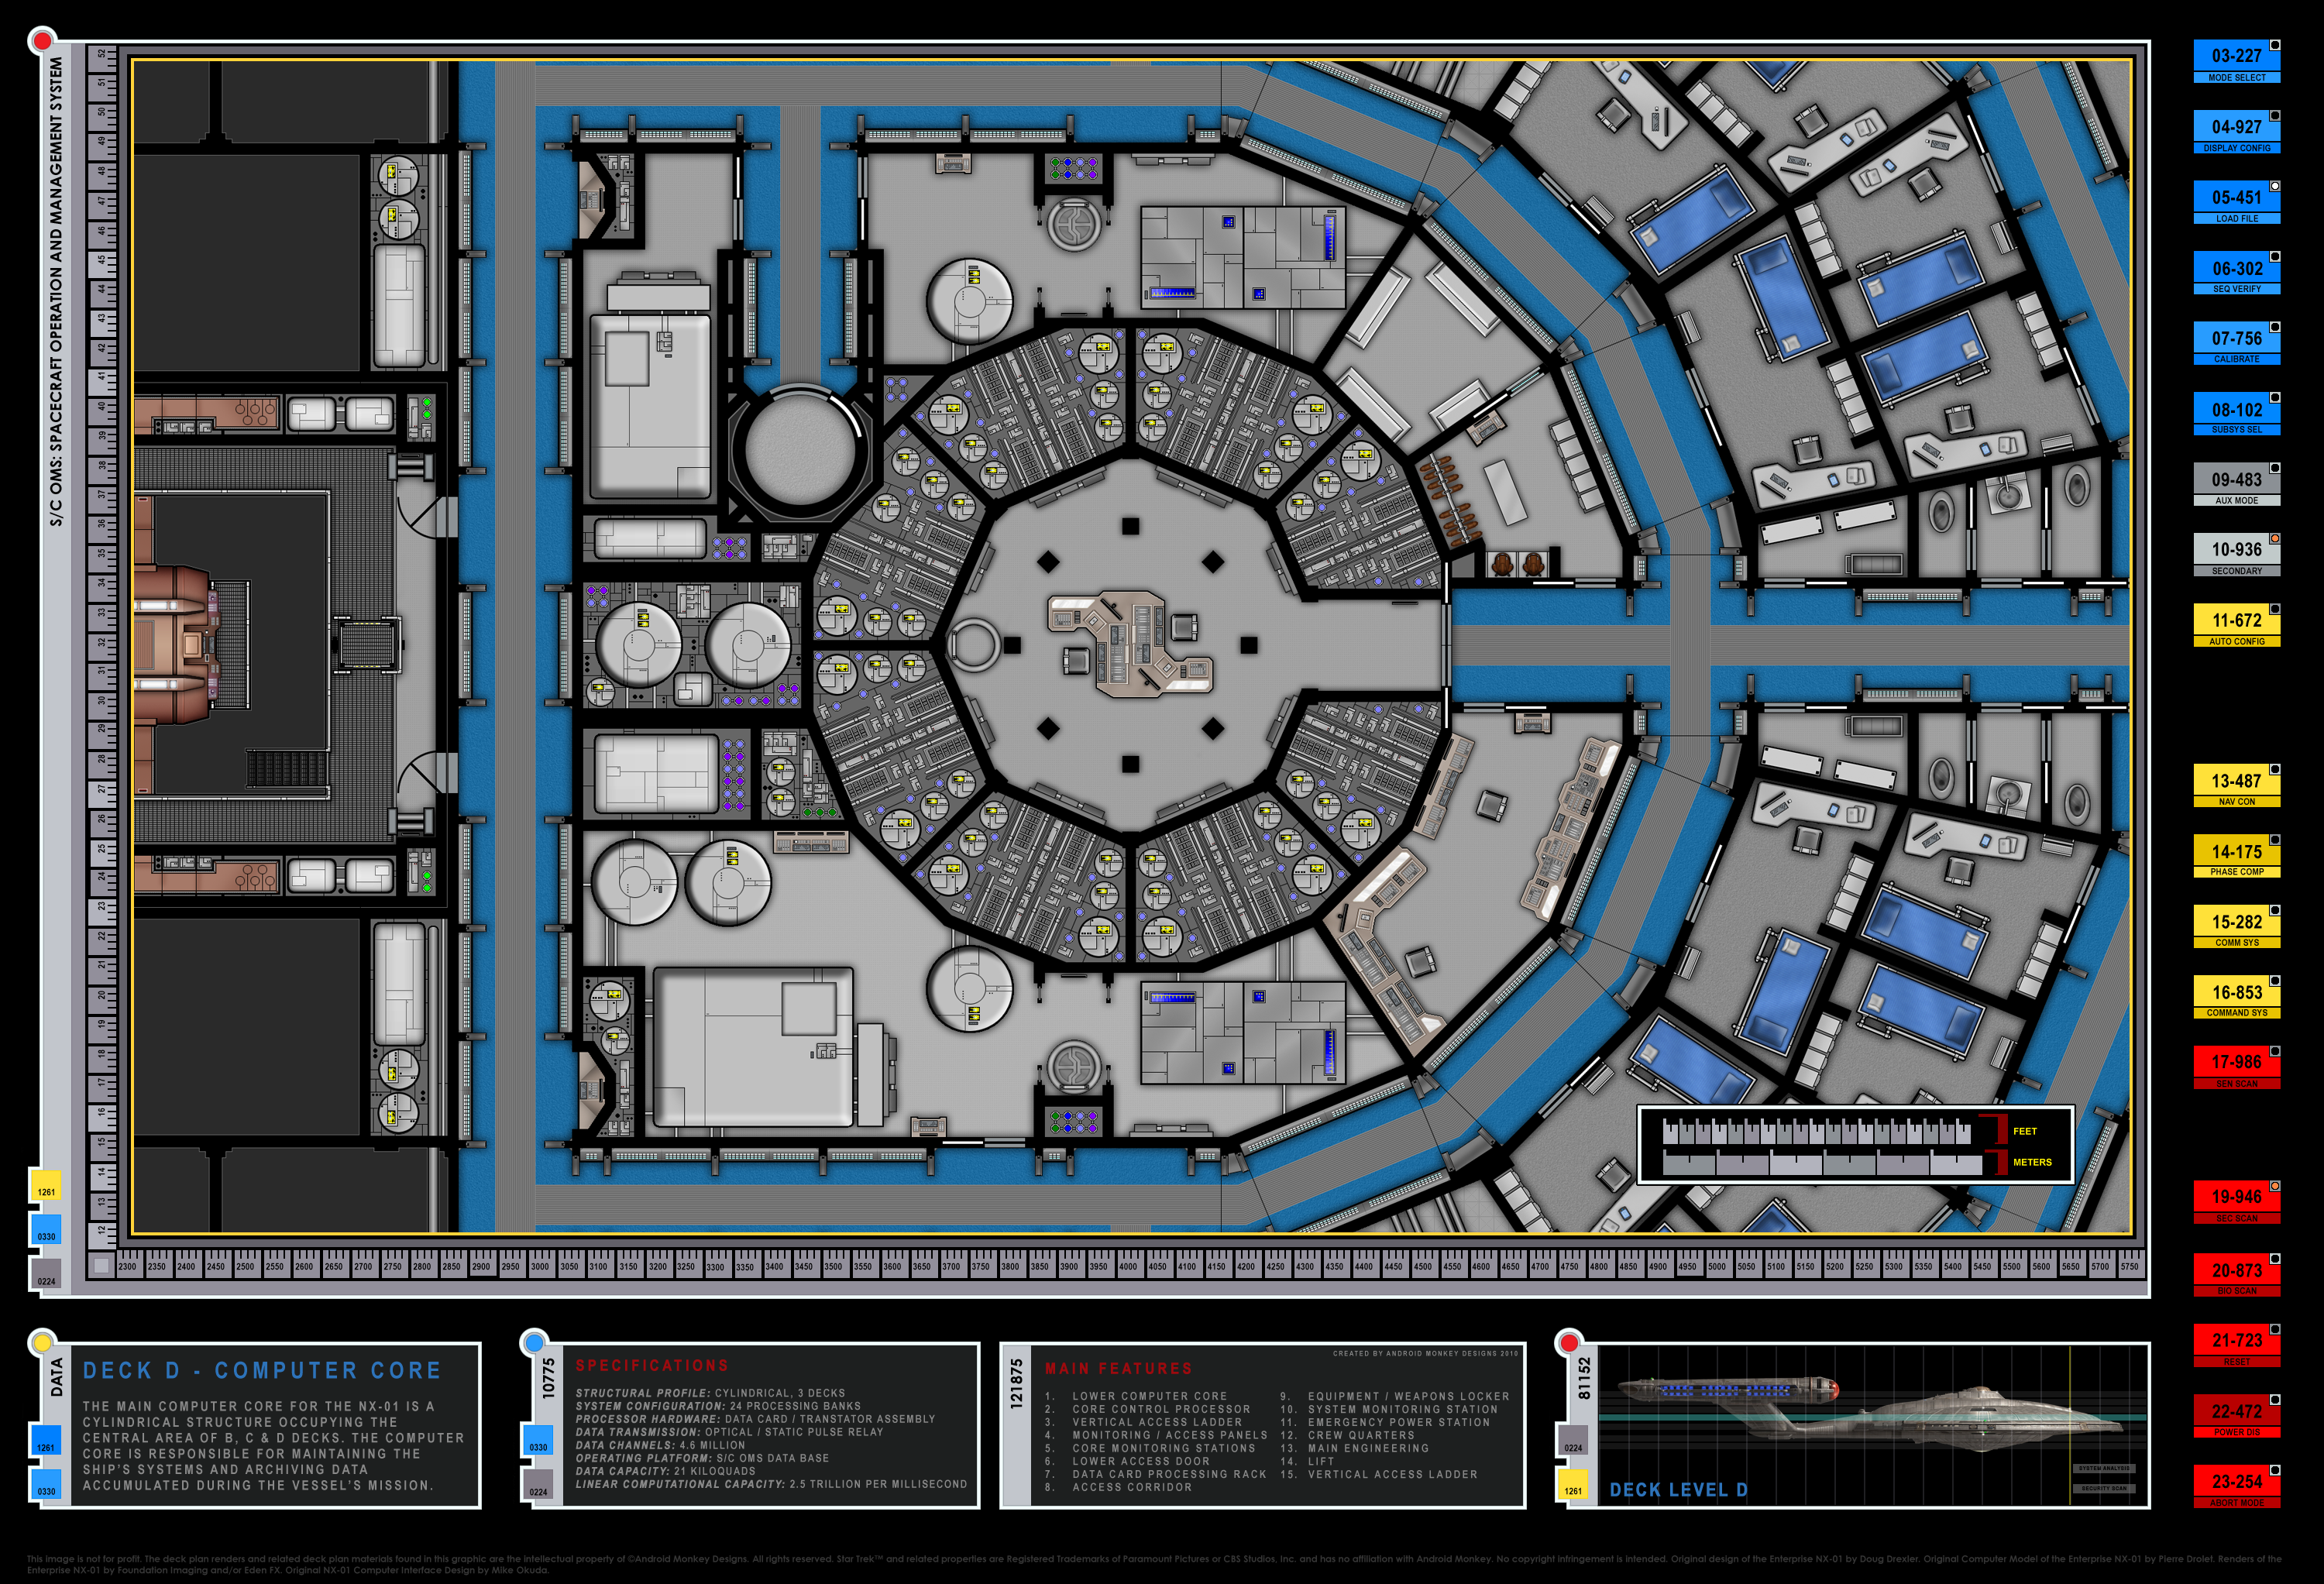 Colored Schematic Of Computer Core (lower Deck); Columbia Class Starship;  U.S.S.